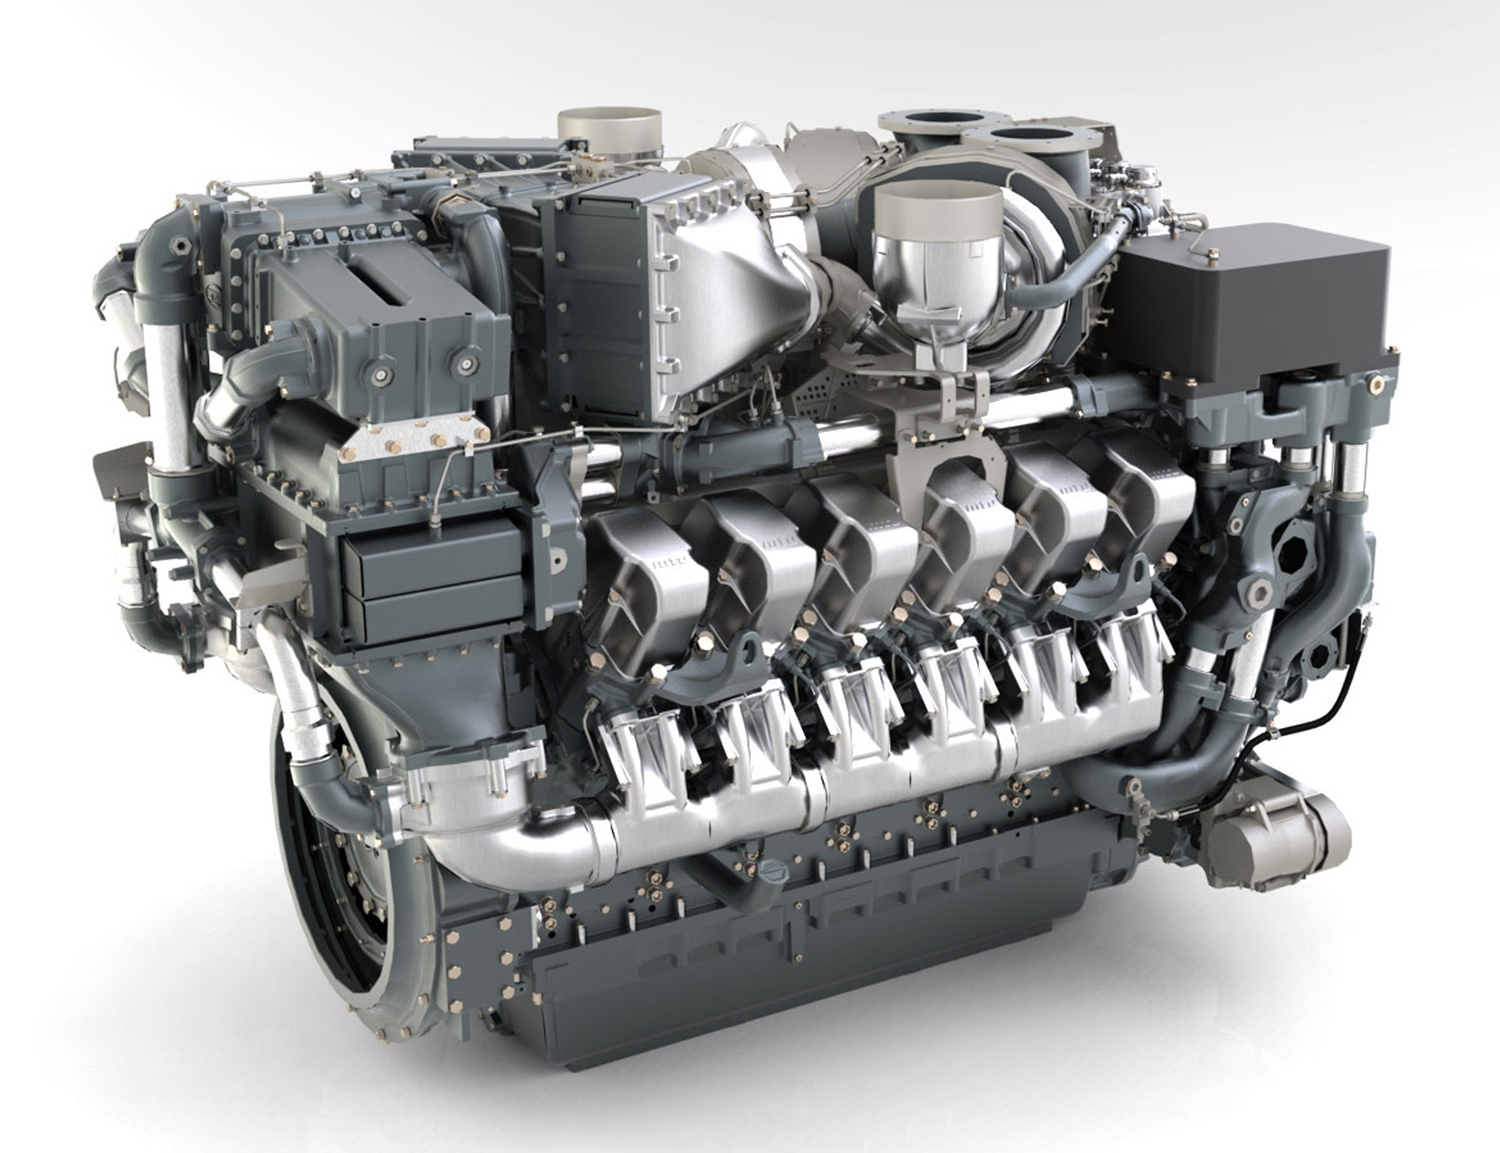 Mtu To Showcase Tier 4i Compliant Engines For Oil And Gas